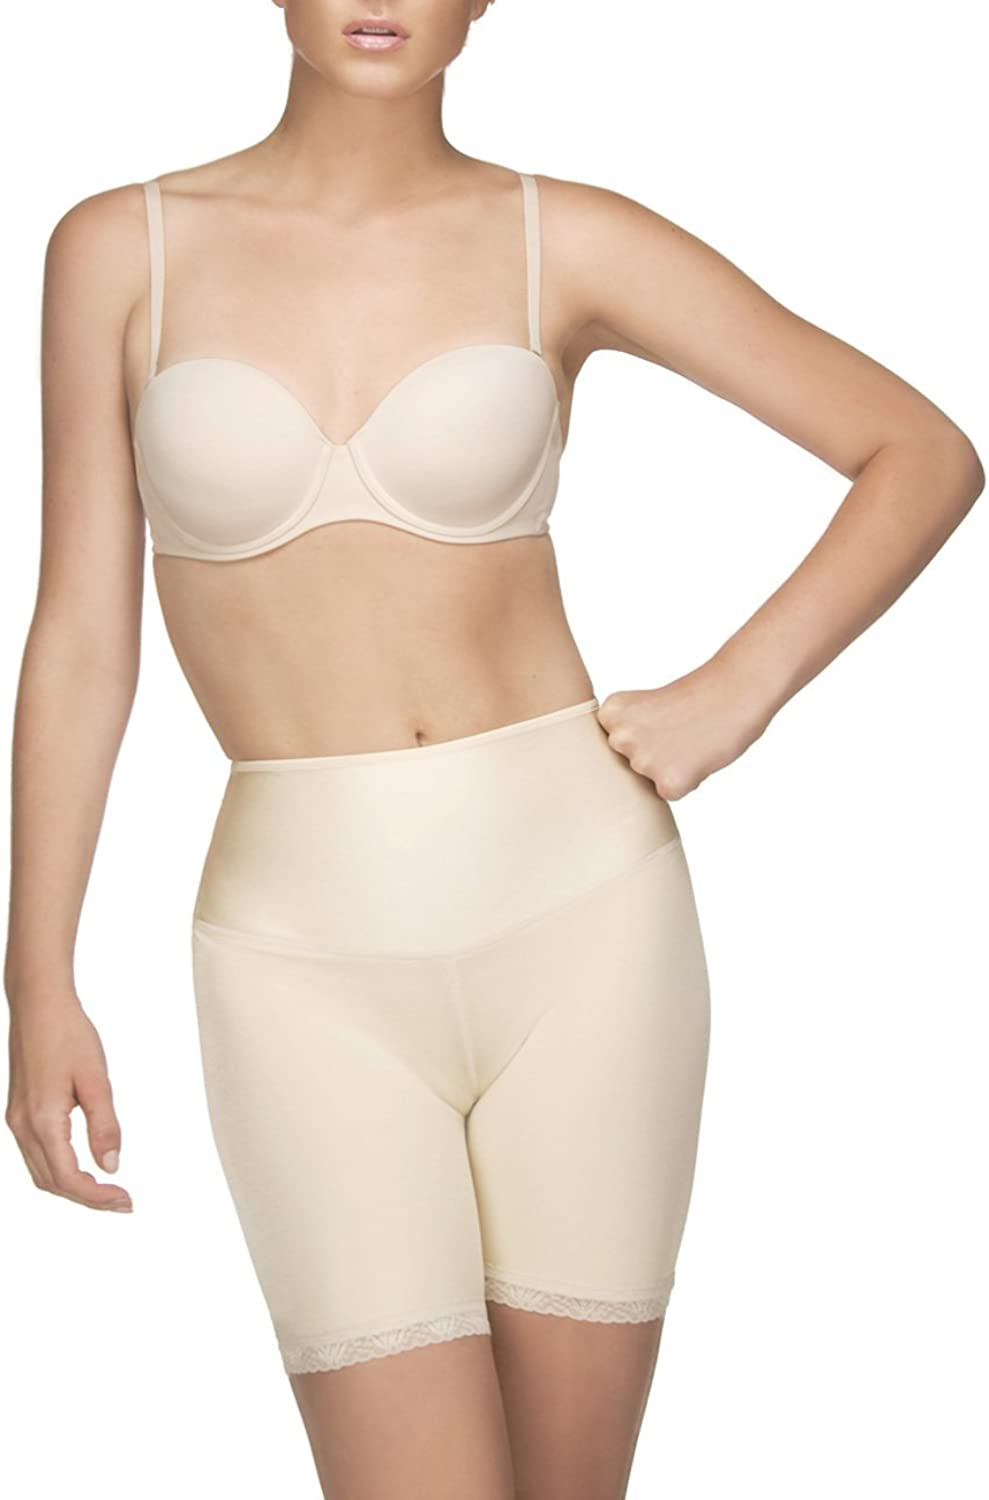 Vedette Womens 204 Dominique Mid Thigh Panty Short Shapewear, Nude, Medium